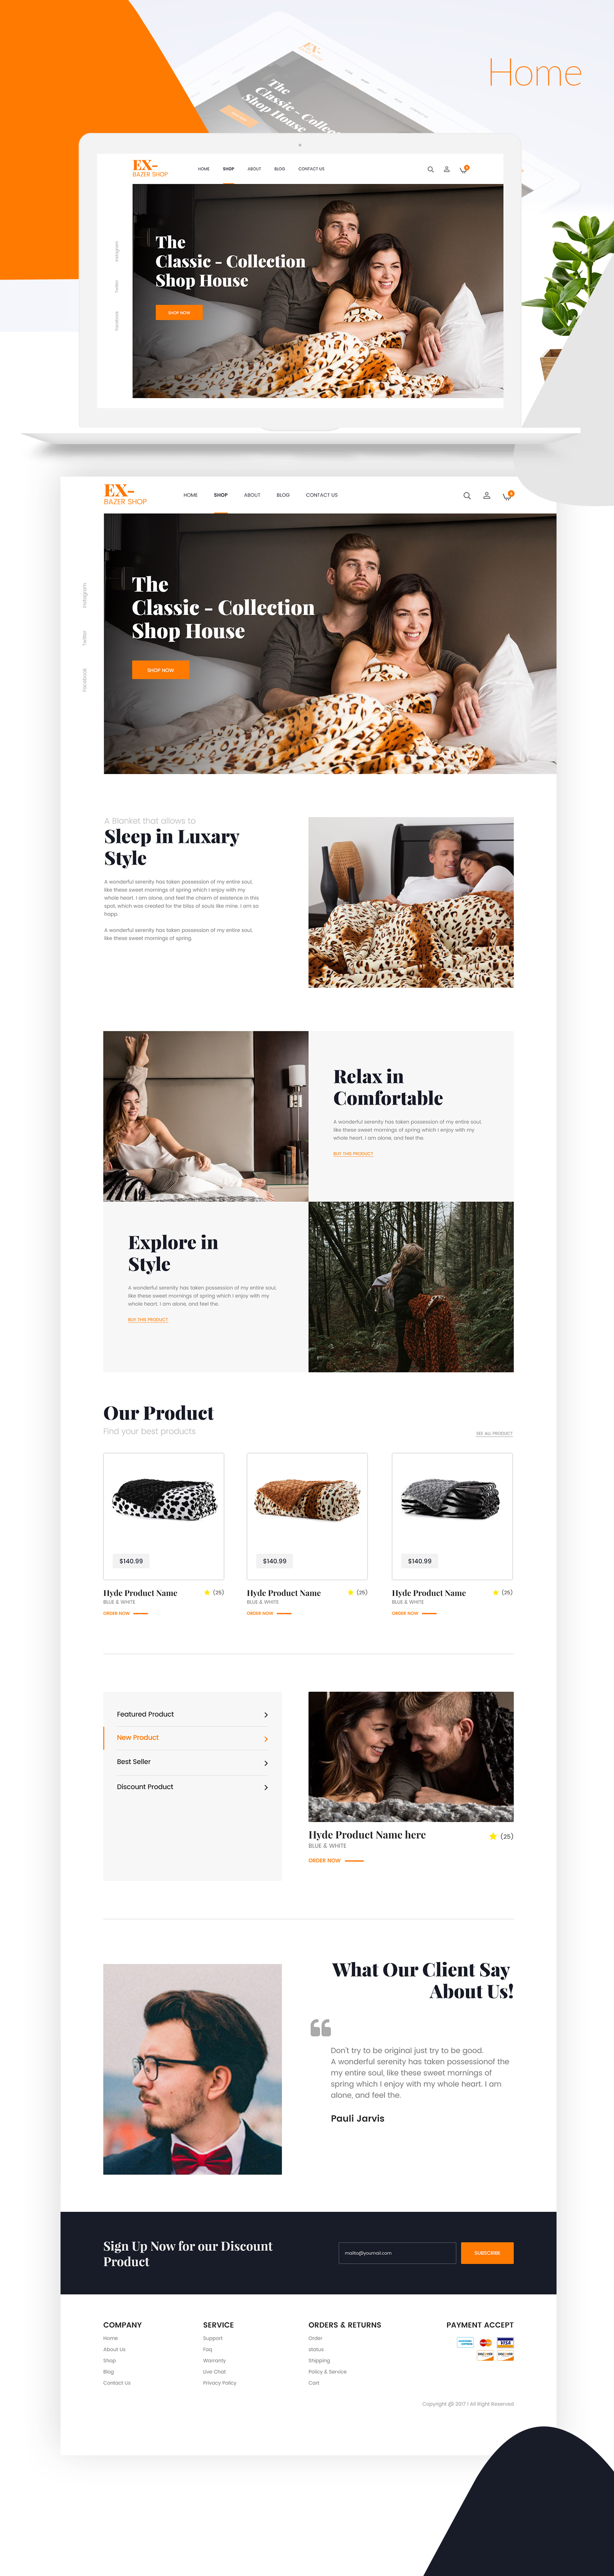 Ecommerce Website Template Xd Pinspiry